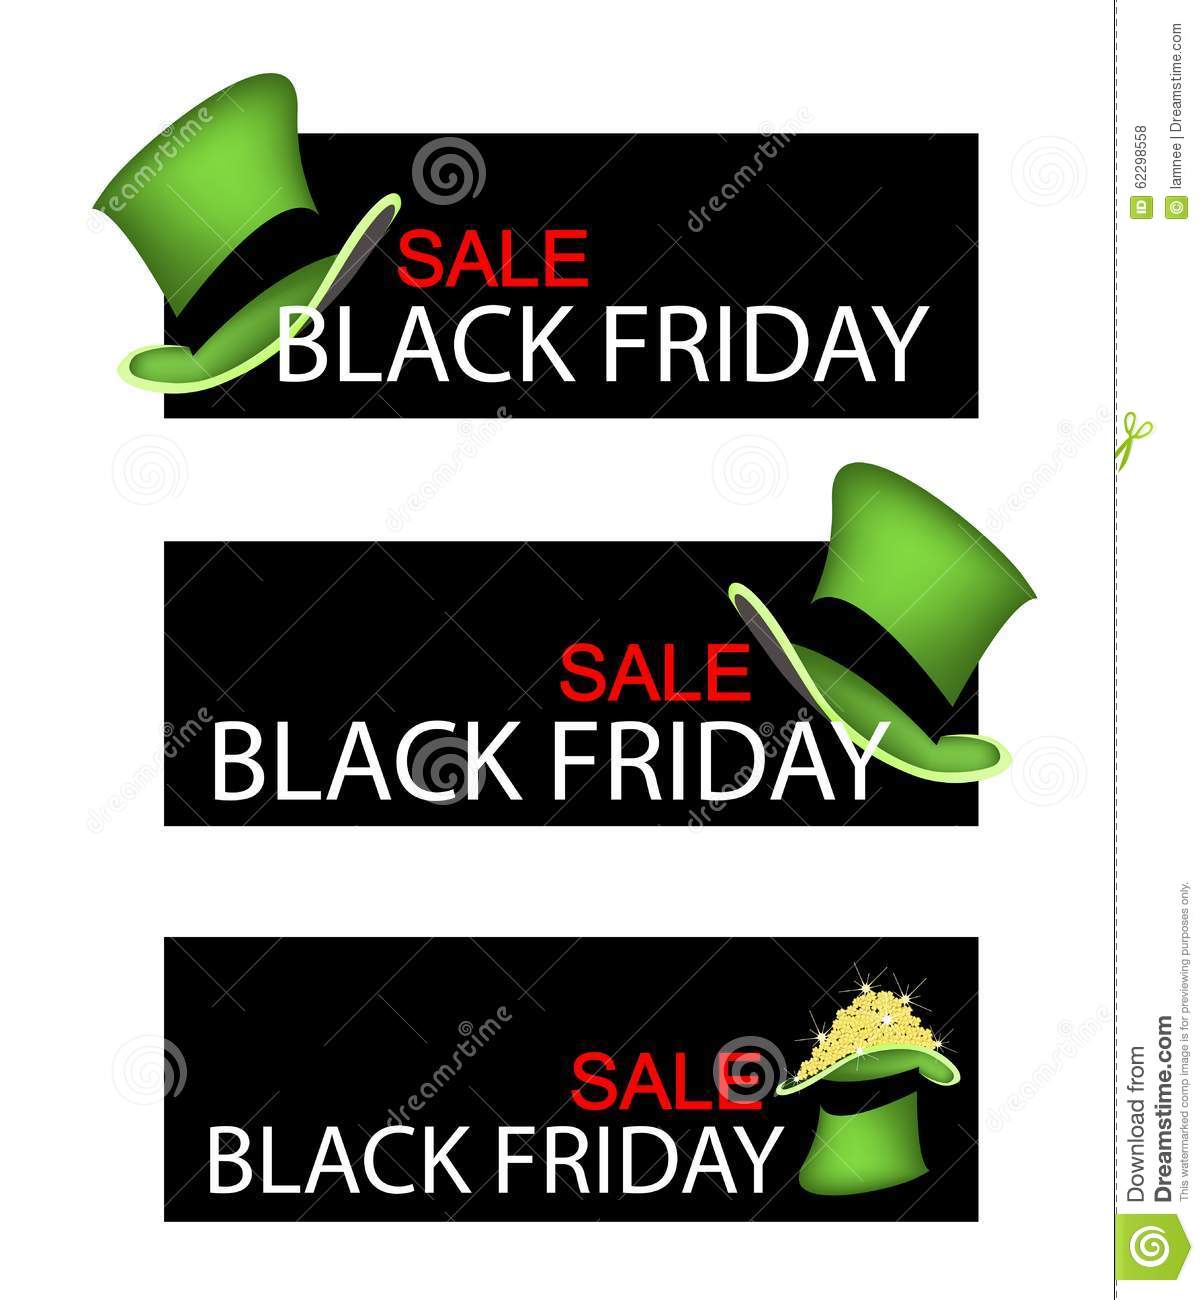 green hat on black friday sale banner stock illustration image 62298558. Black Bedroom Furniture Sets. Home Design Ideas